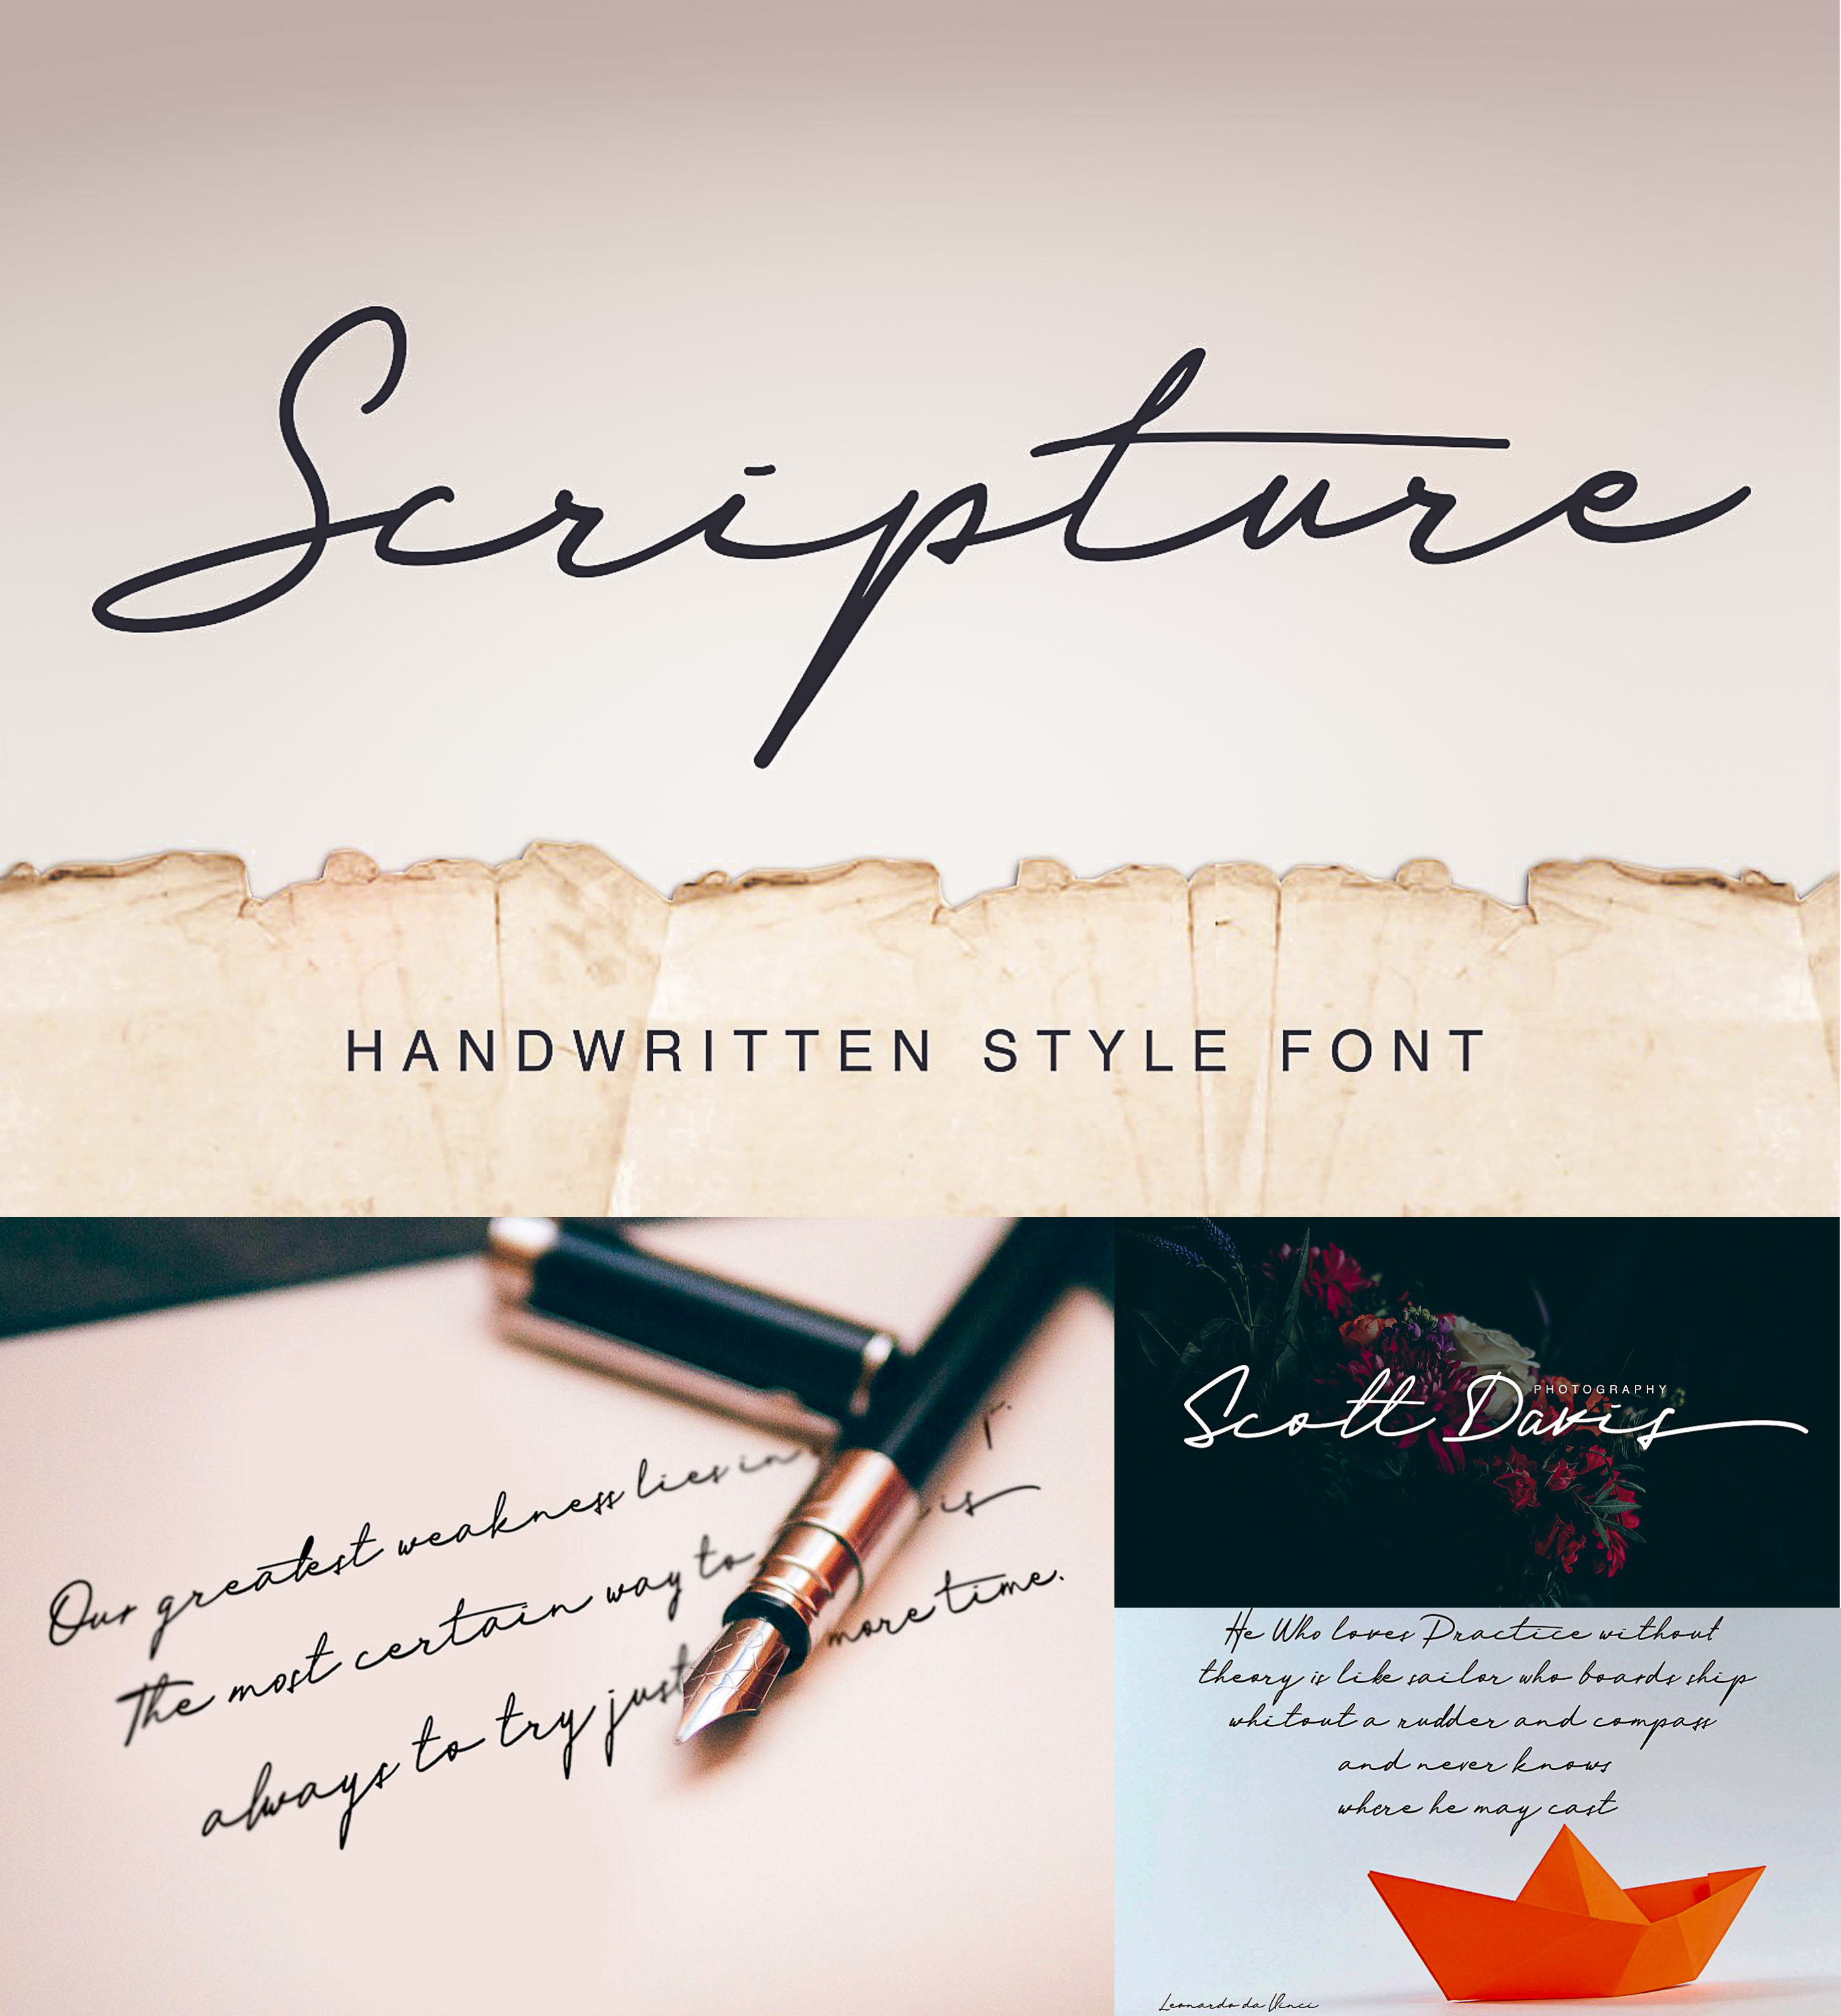 Introducing Lovely Handwritten Style Font Scripture Free For Download Personal Use File Format Otf Ttf Photoshop Or Other Software